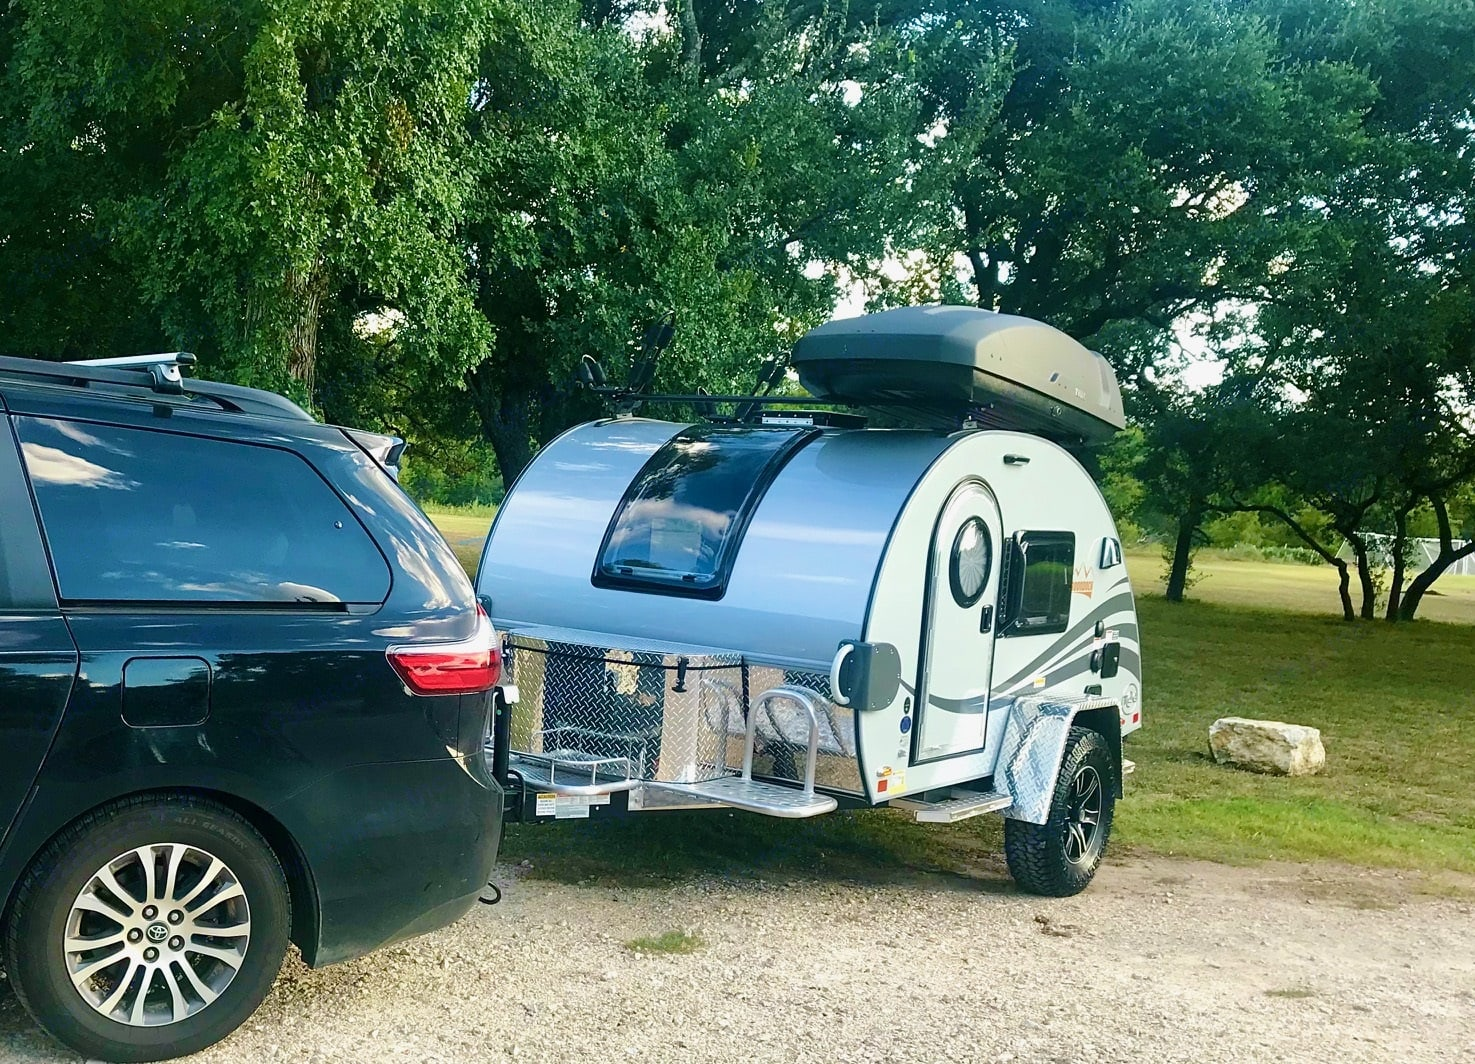 Nucamp T@G XL easily pulls behind almost any SUV. We use our minivan.. Nucamp T@G XL Boondock 2021